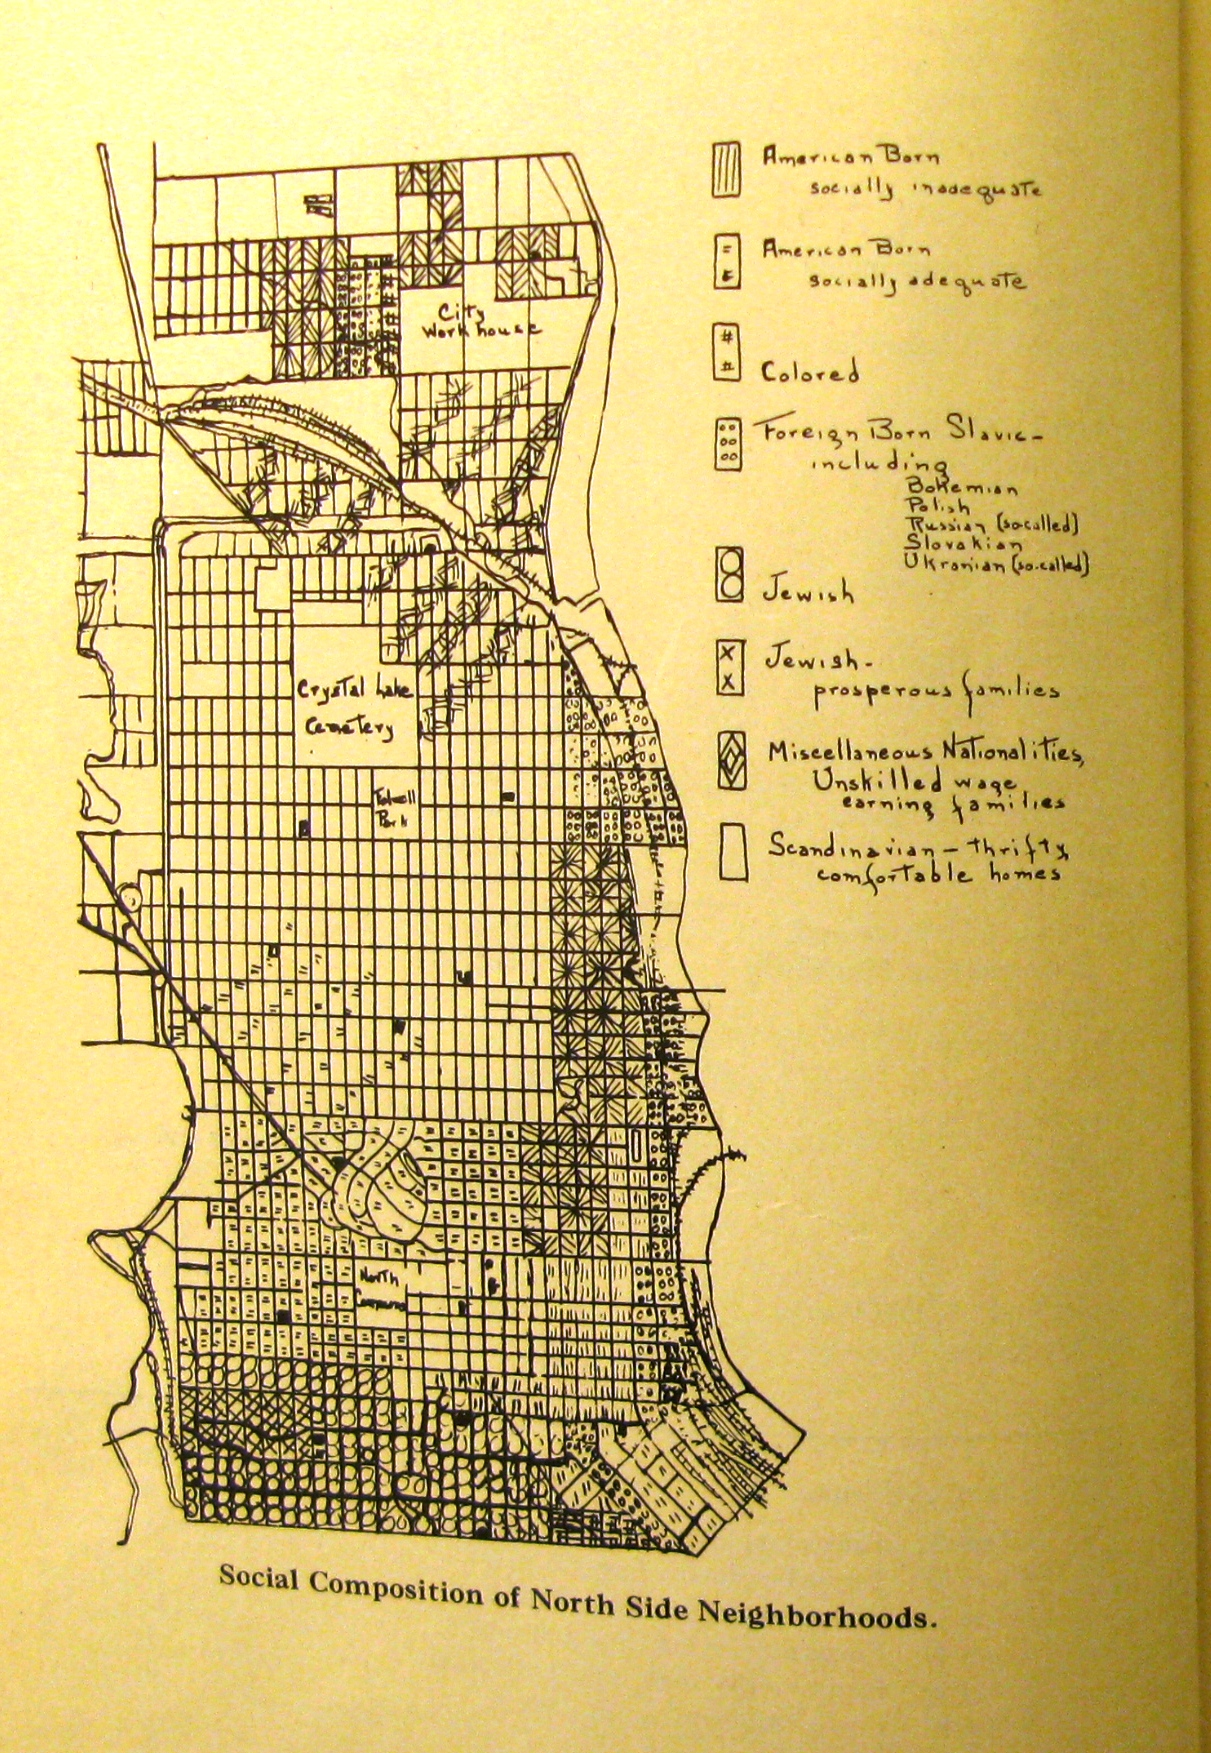 social composition of near northside neighborhoods, map from a study of social conditions, 1925